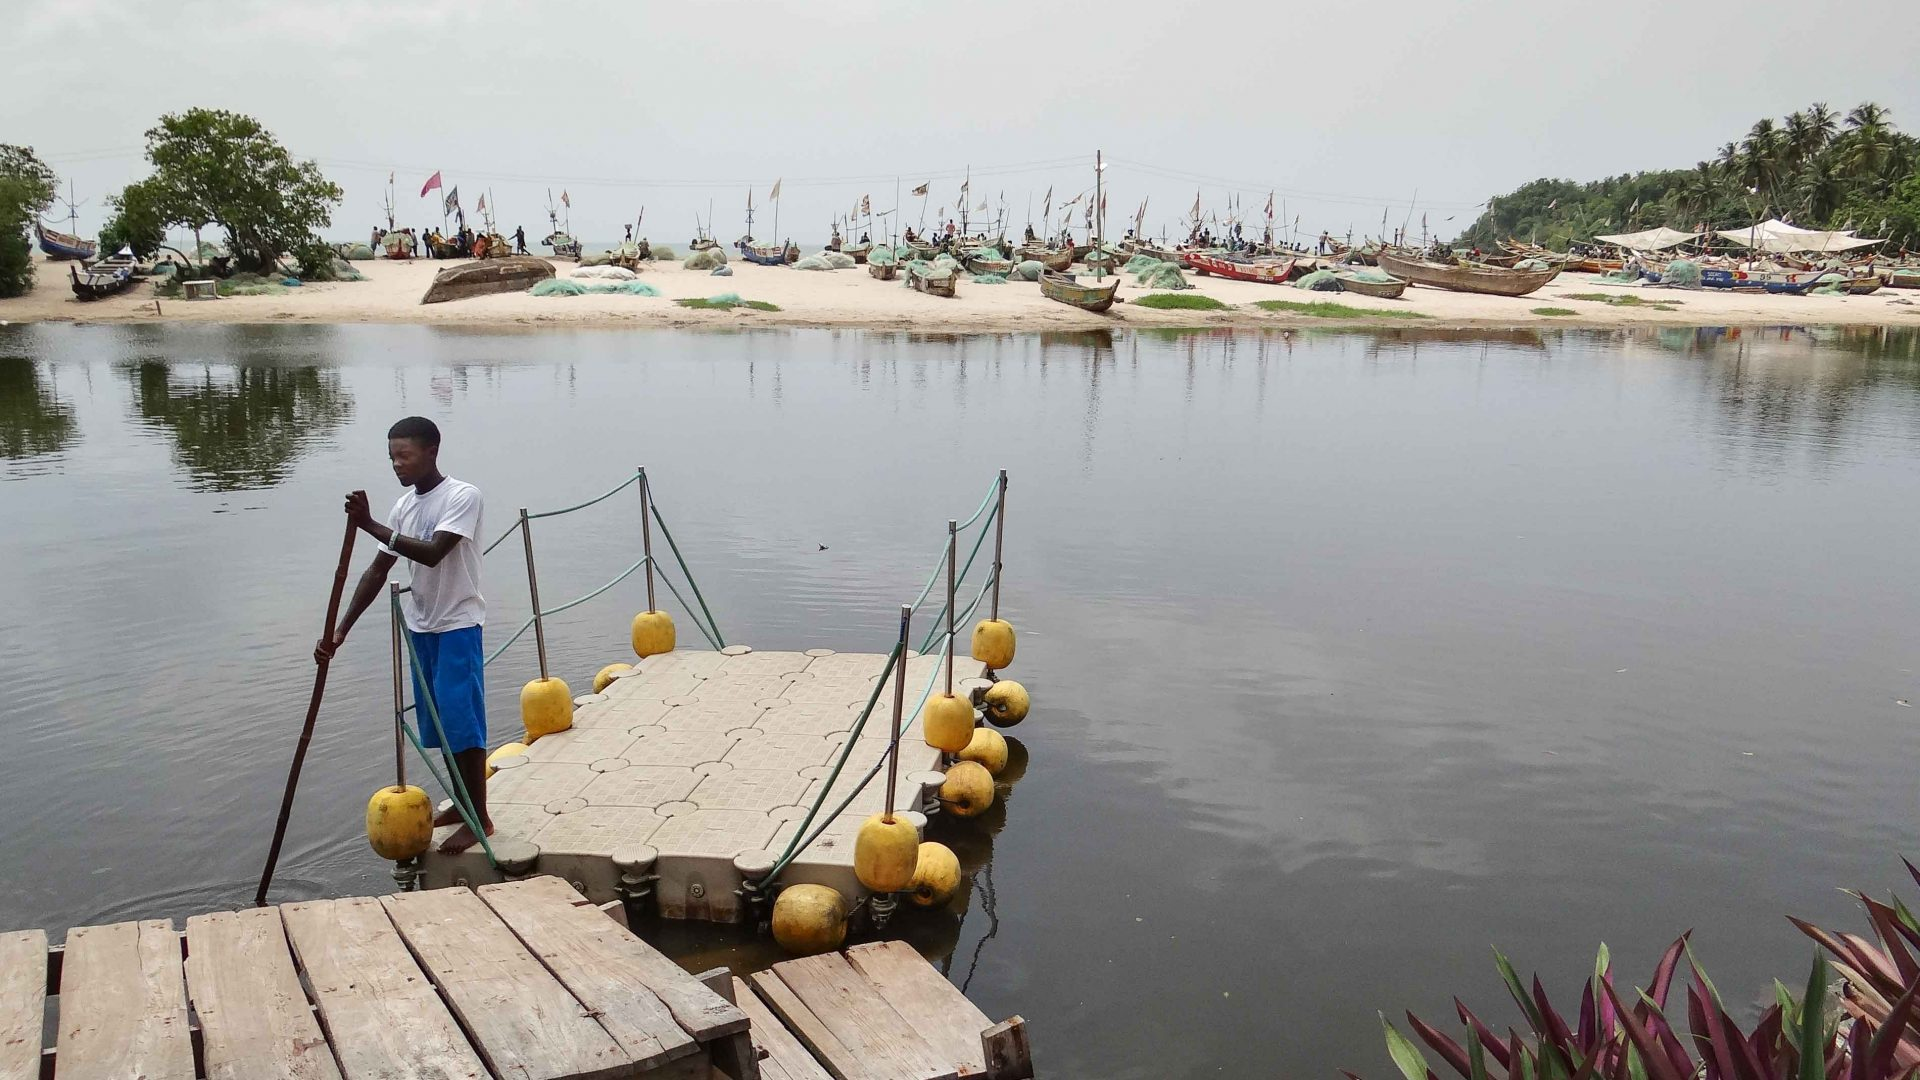 A boat man crosses the lagoon in front of White Sands, Ghana.